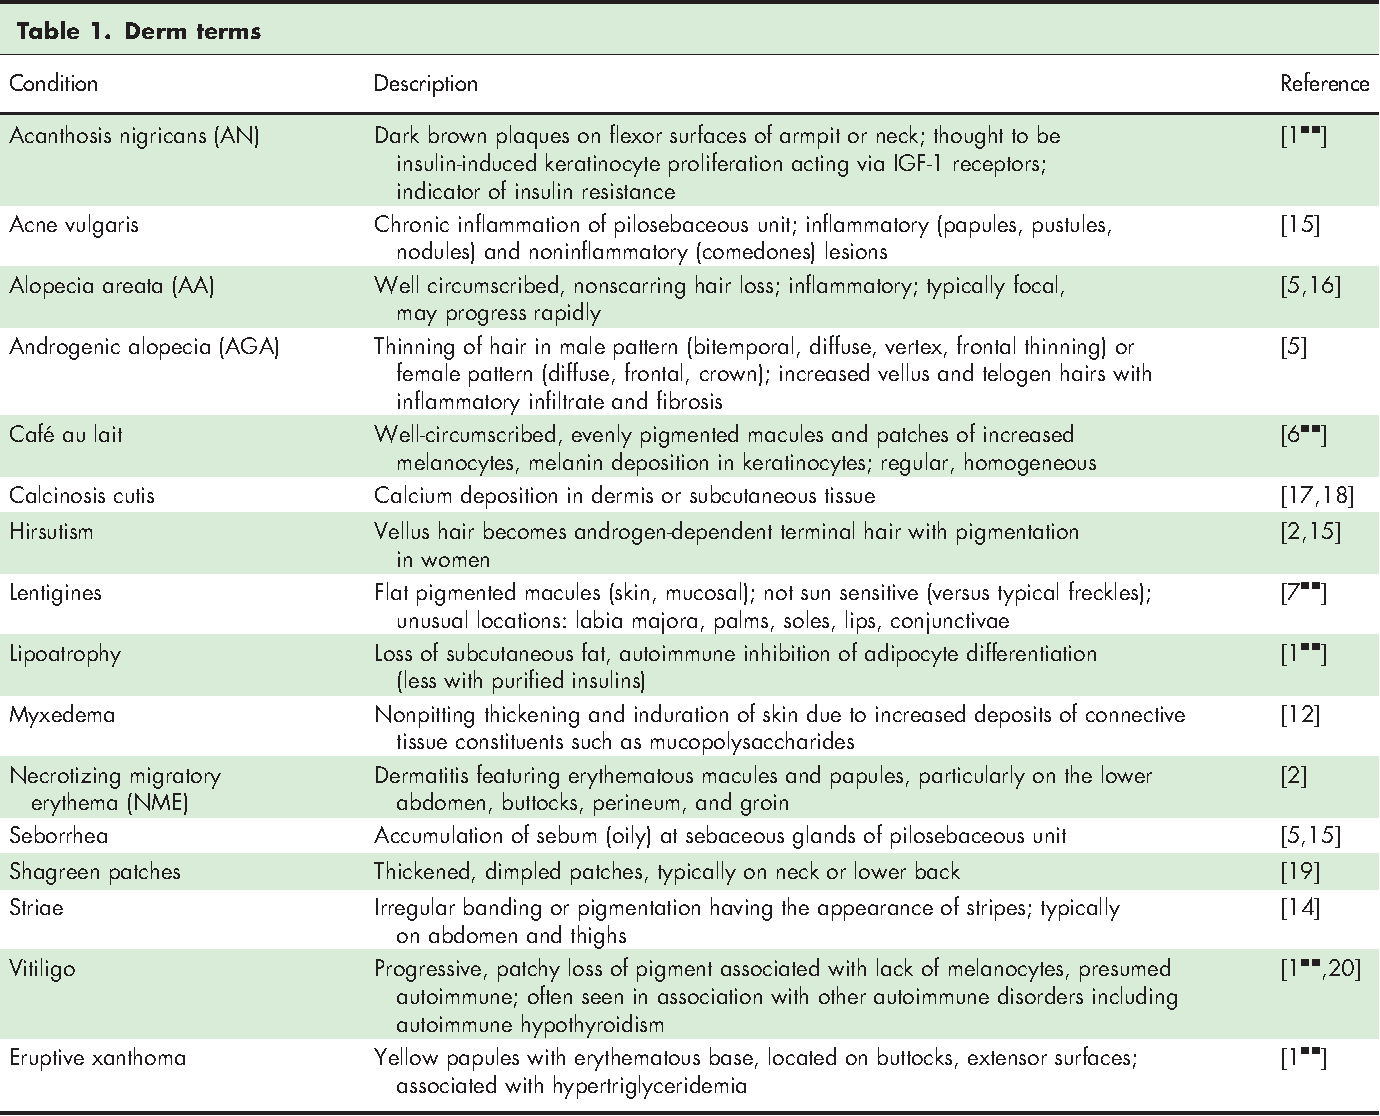 Table 1 From Dermatologic Manifestations Of Endocrine